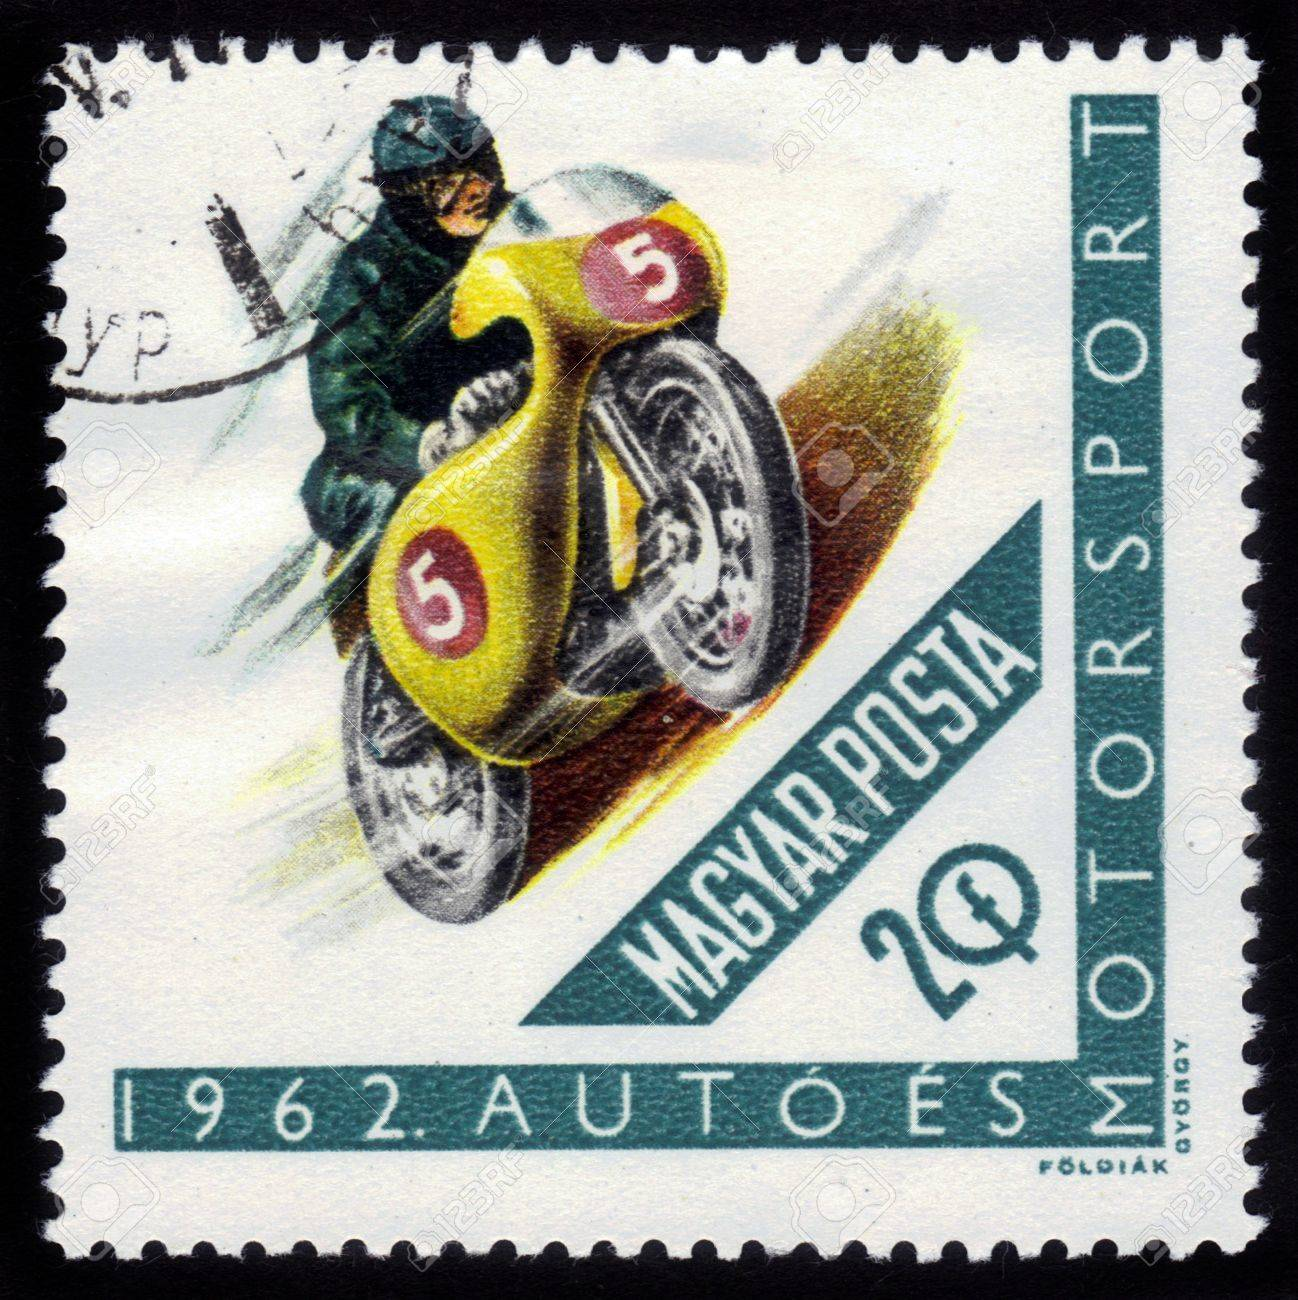 HUNGARY - CIRCA 1962: A stamps printed in Hungary showing racing motorcycle, series, circa 1962 Stock Photo - 15347336